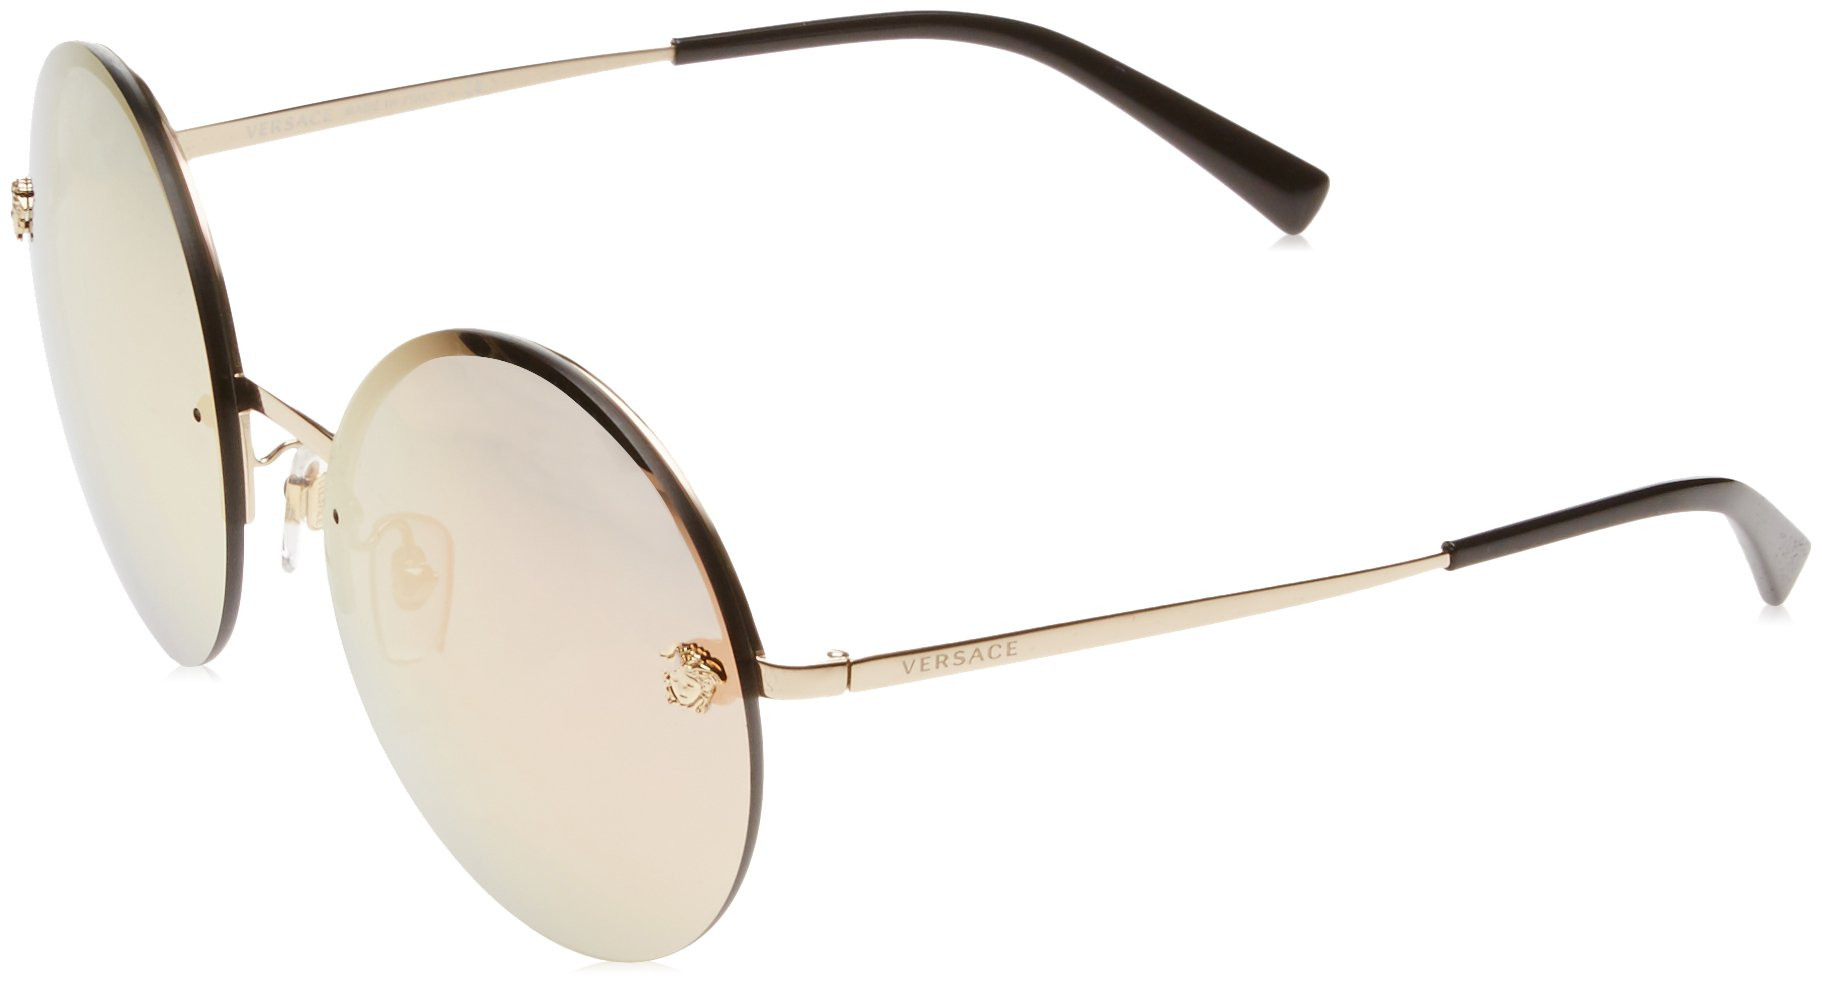 Versace Women's VE2176 Pale Gold/Grey Mirror Rose Gold Sunglasses by Versace (Image #1)